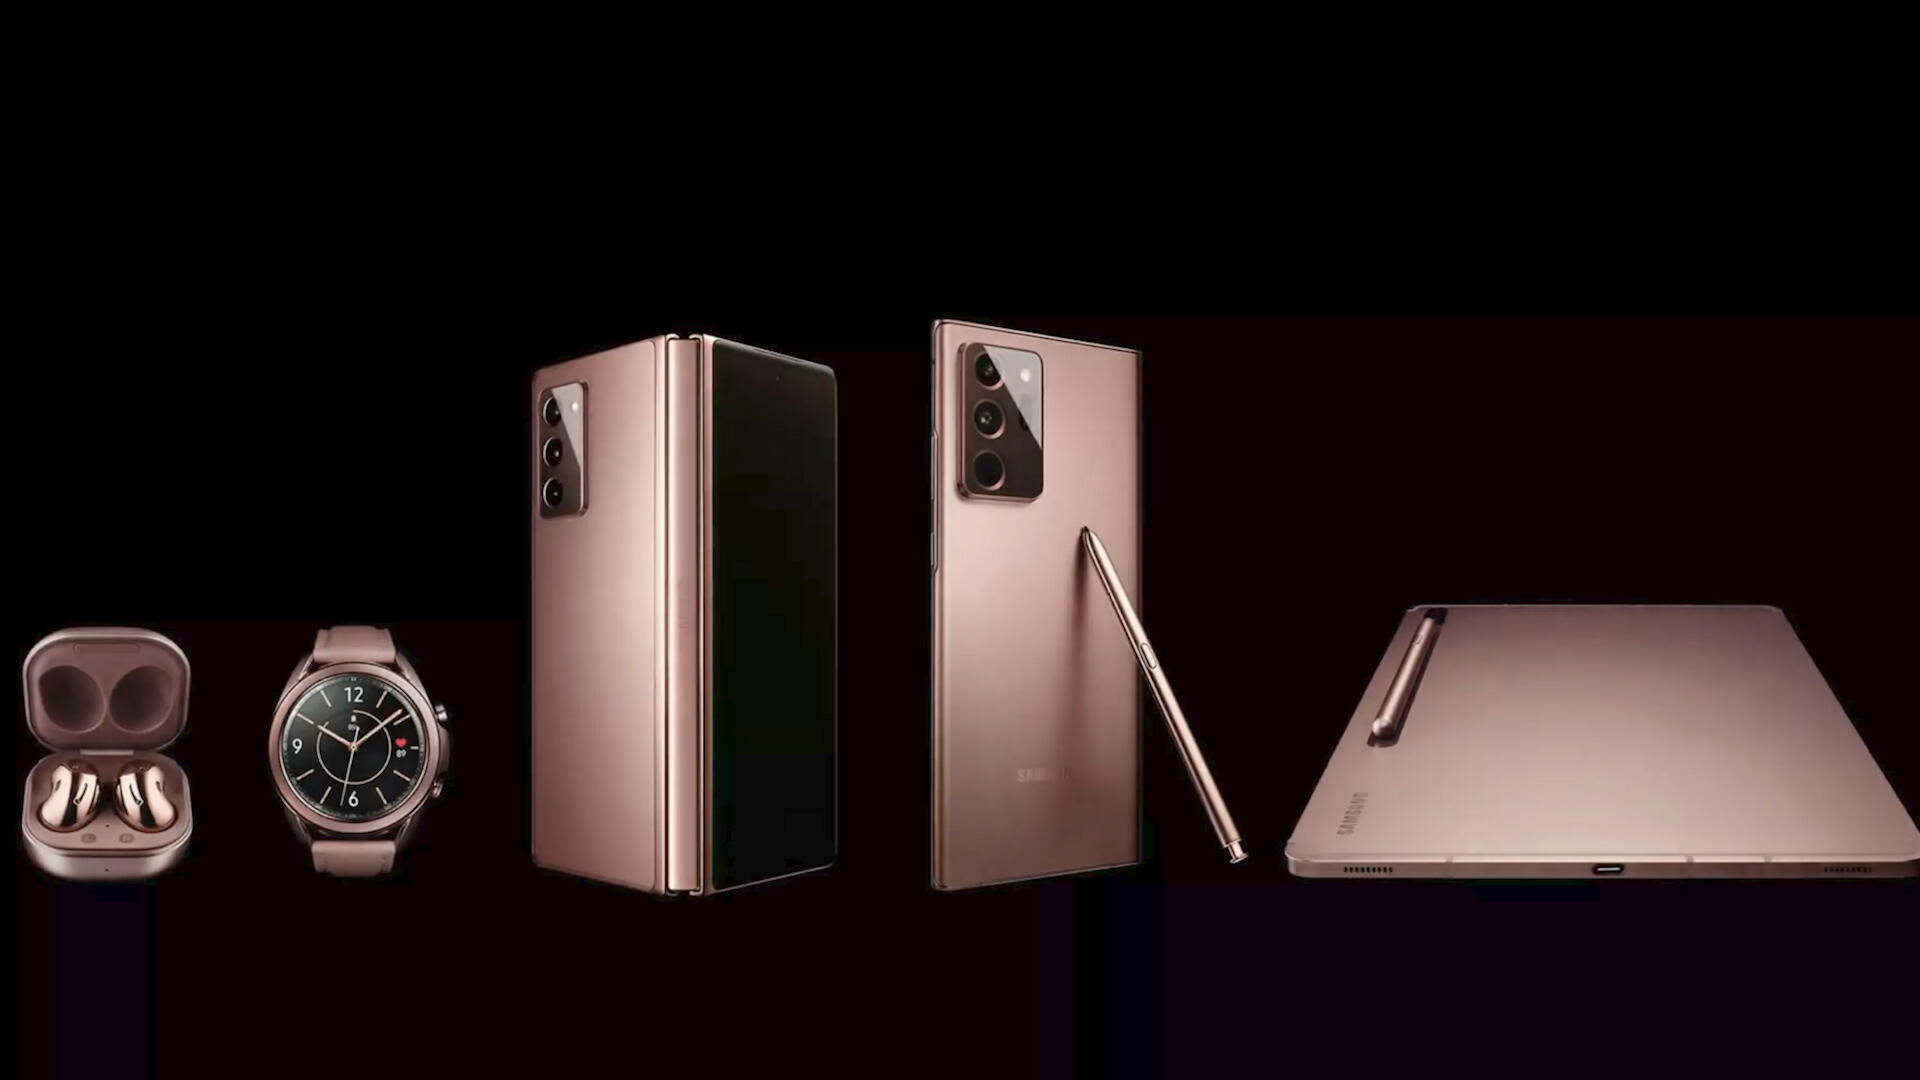 Video: Samsung Unpacked showcases new devices, partnerships